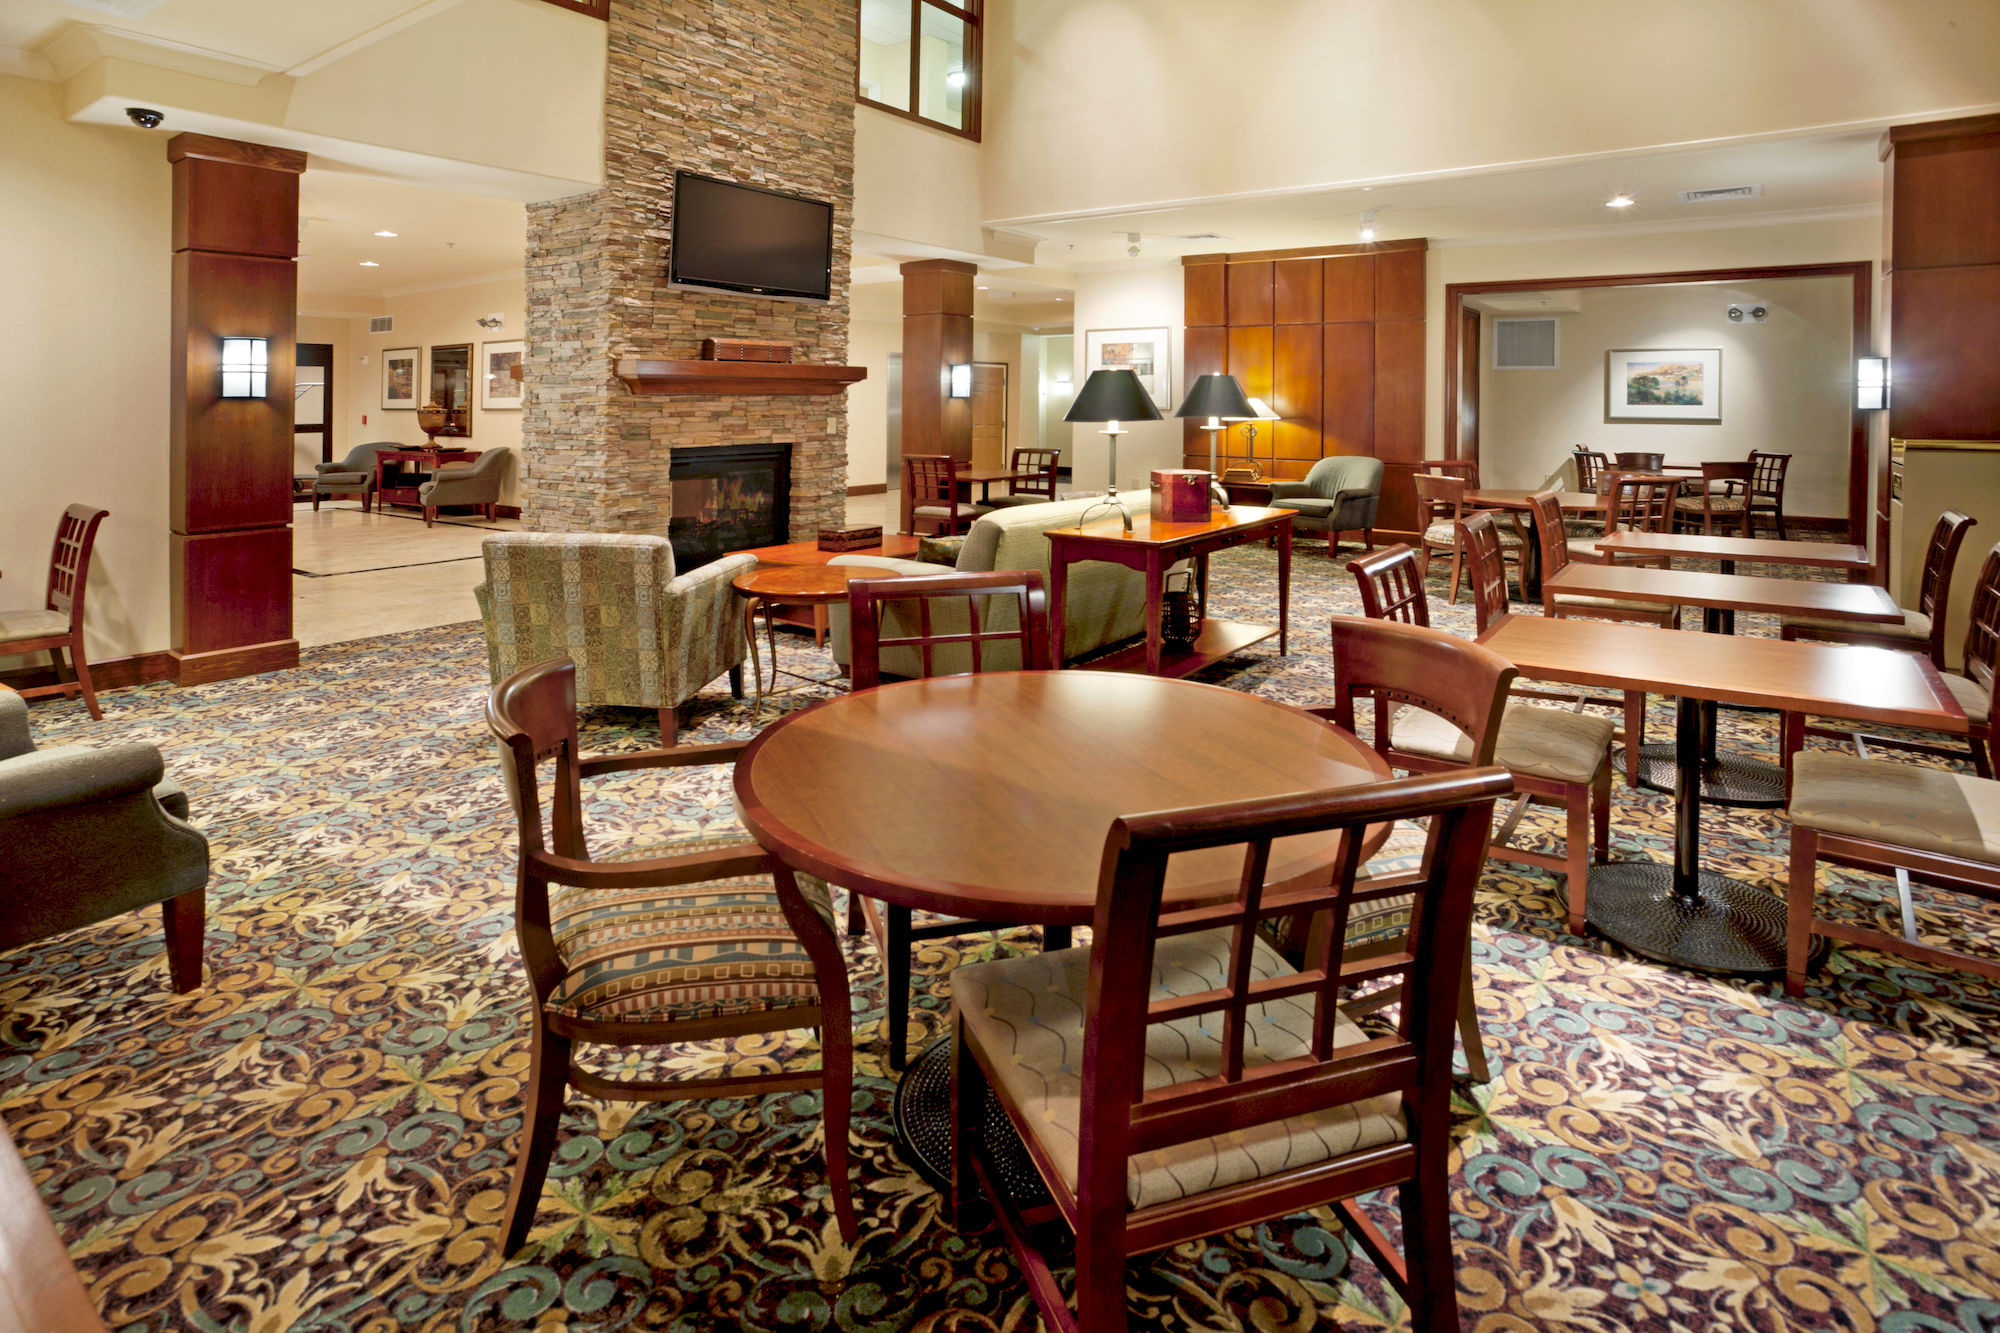 Austin Hotel Coupons for Austin, Texas - FreeHotelCoupons.com